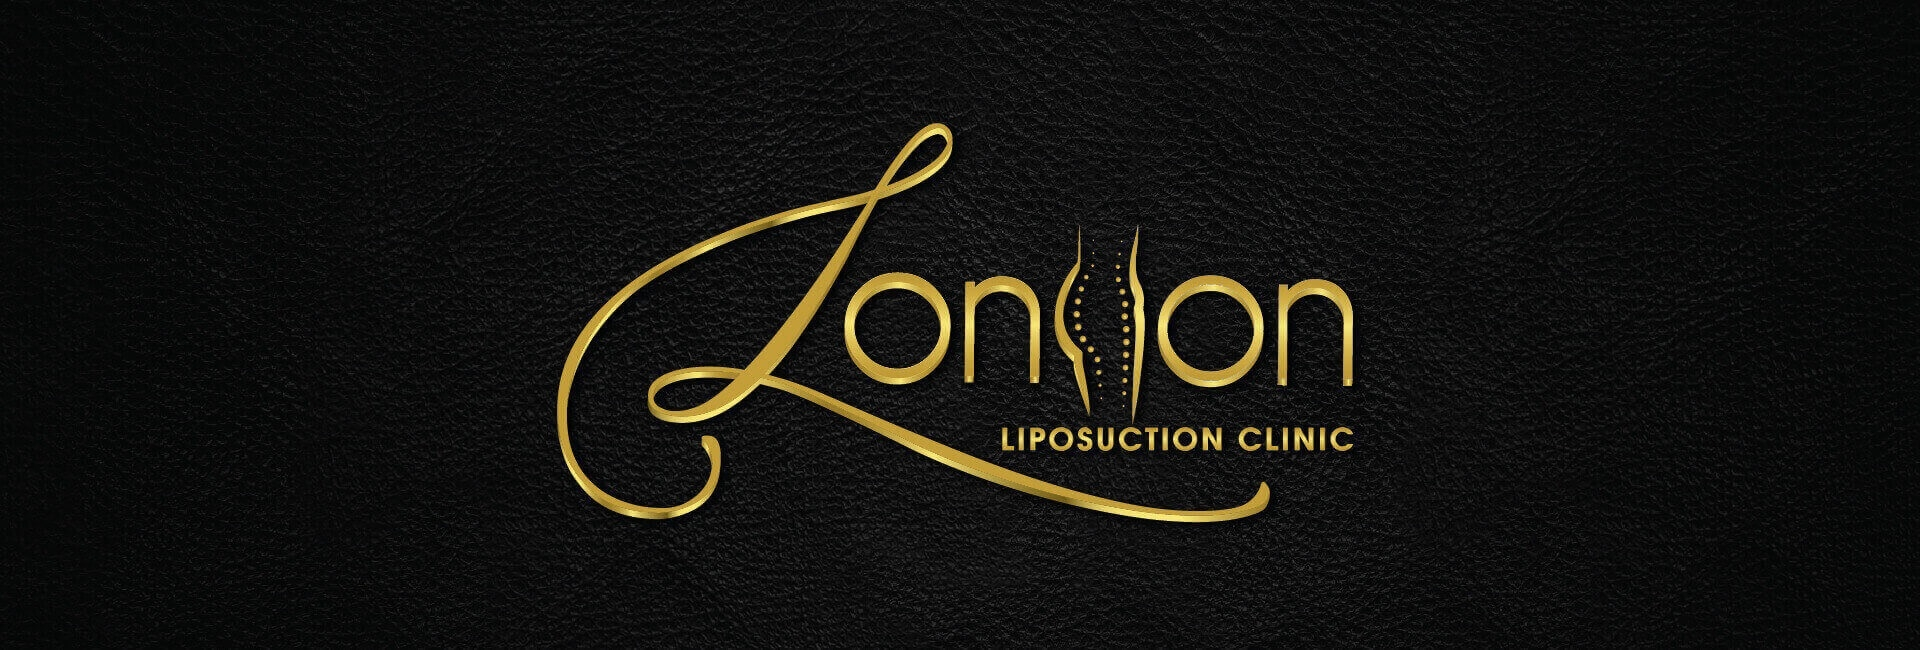 London Liposuction Clinic (@londonliposuctionclinic) Cover Image